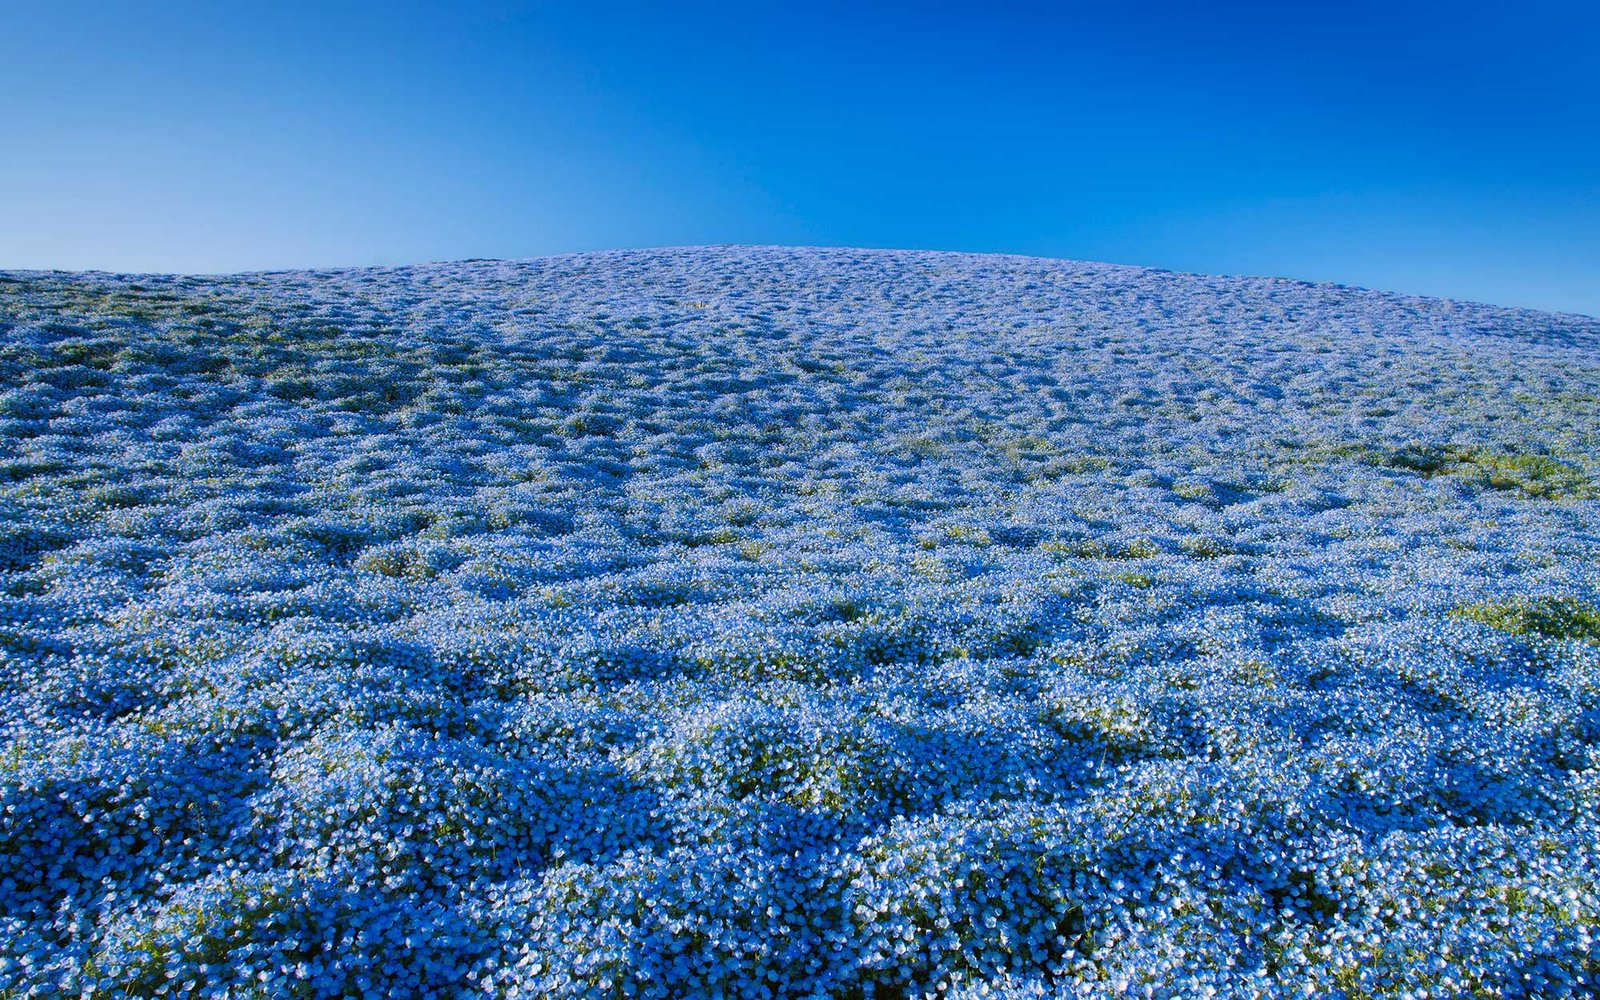 Late Fall Wallpaper Over 4 Million Blue Flowers Bloomed At A Japanese Park